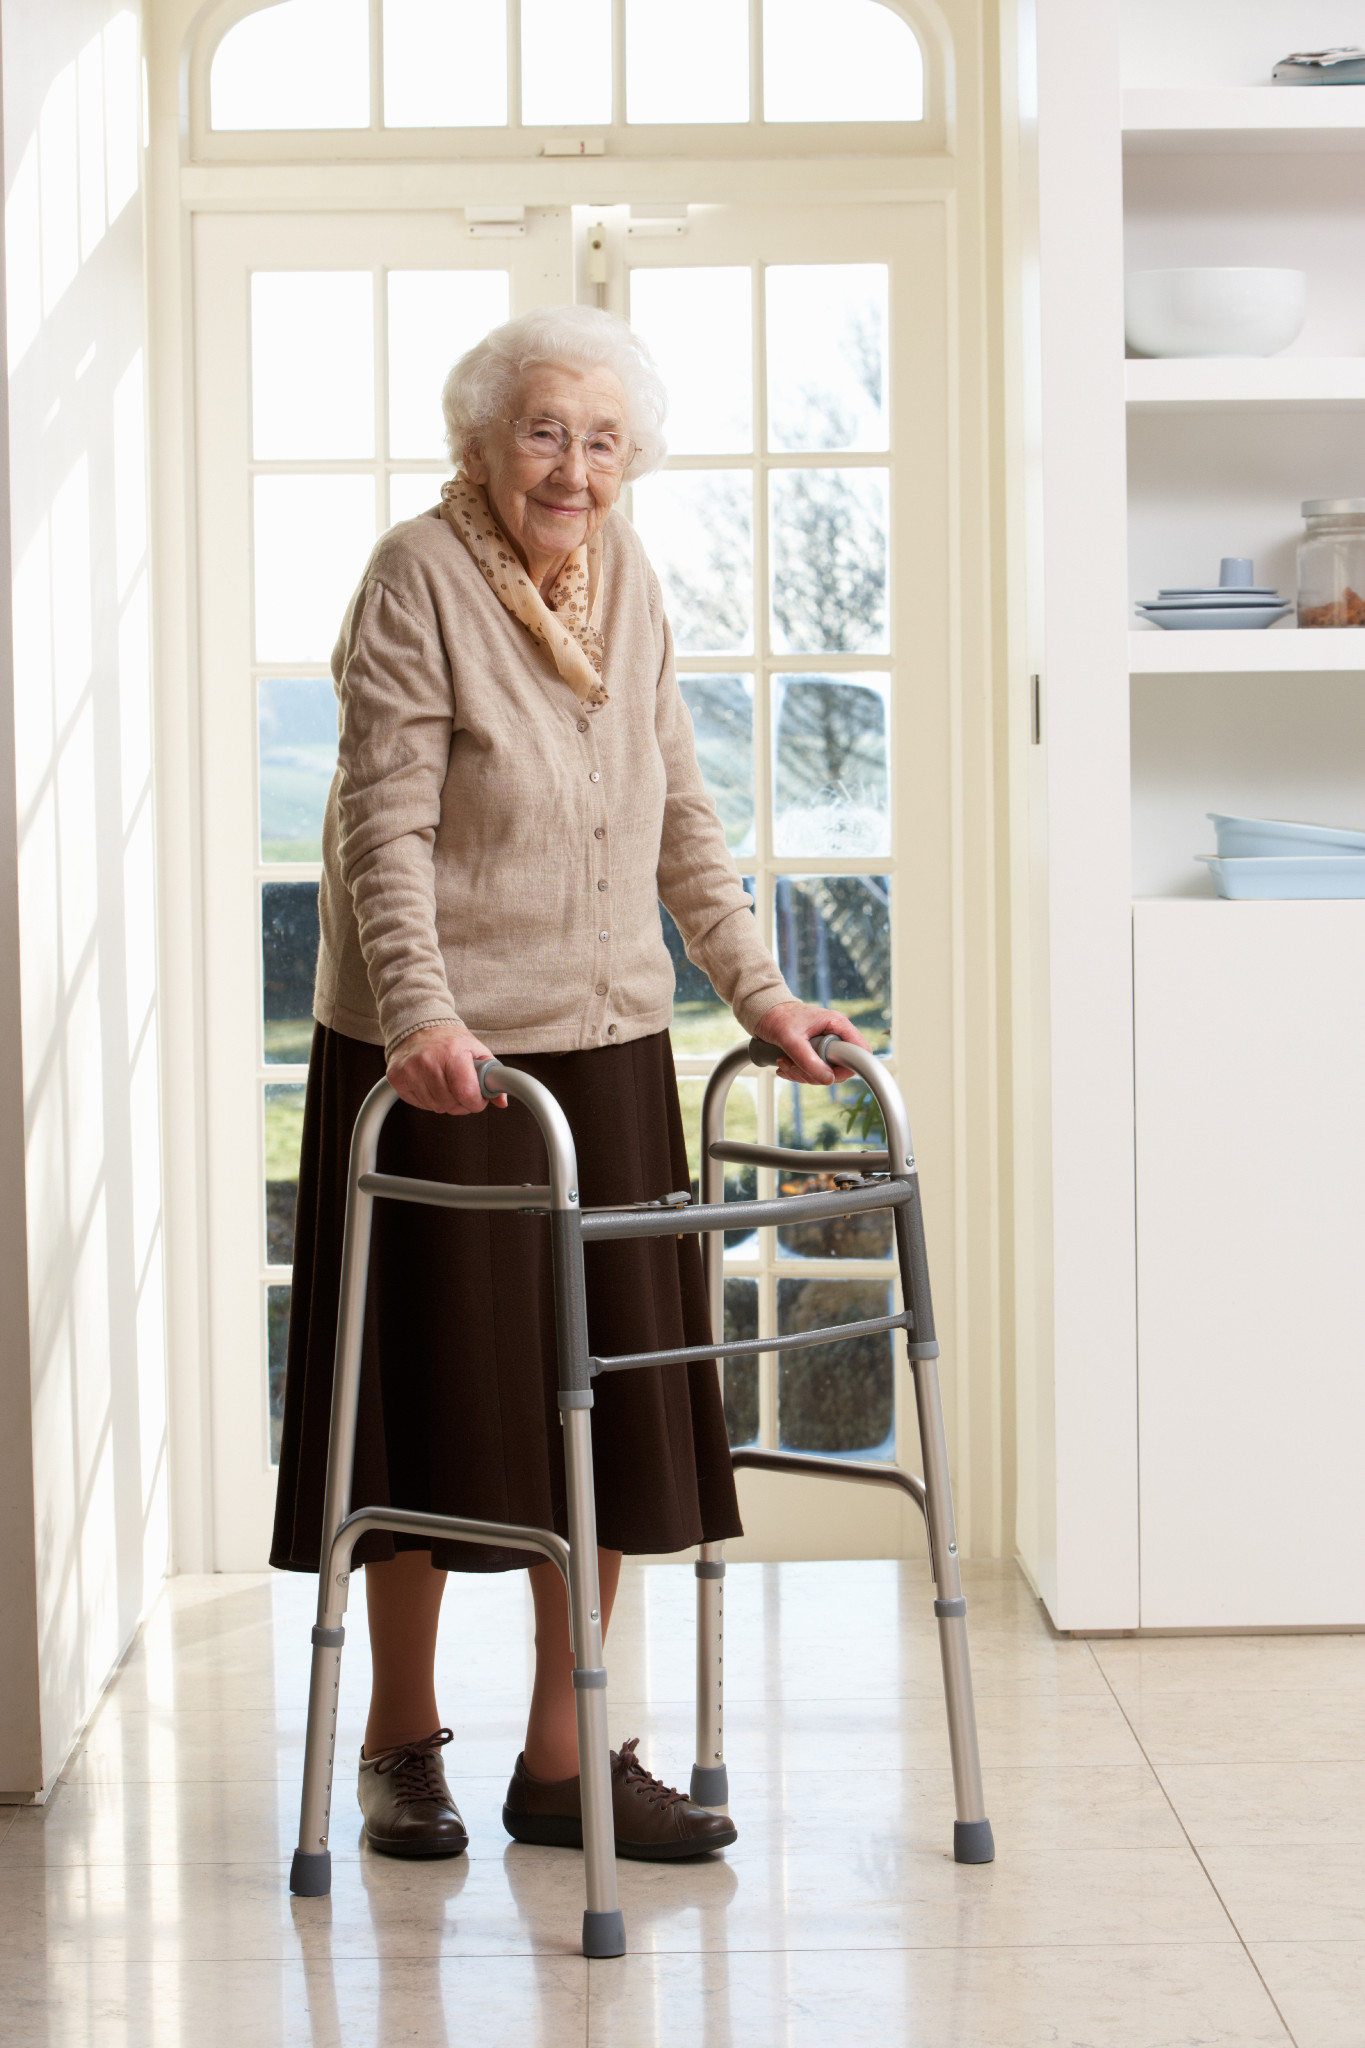 Readmission Risk for Seniors: Falls